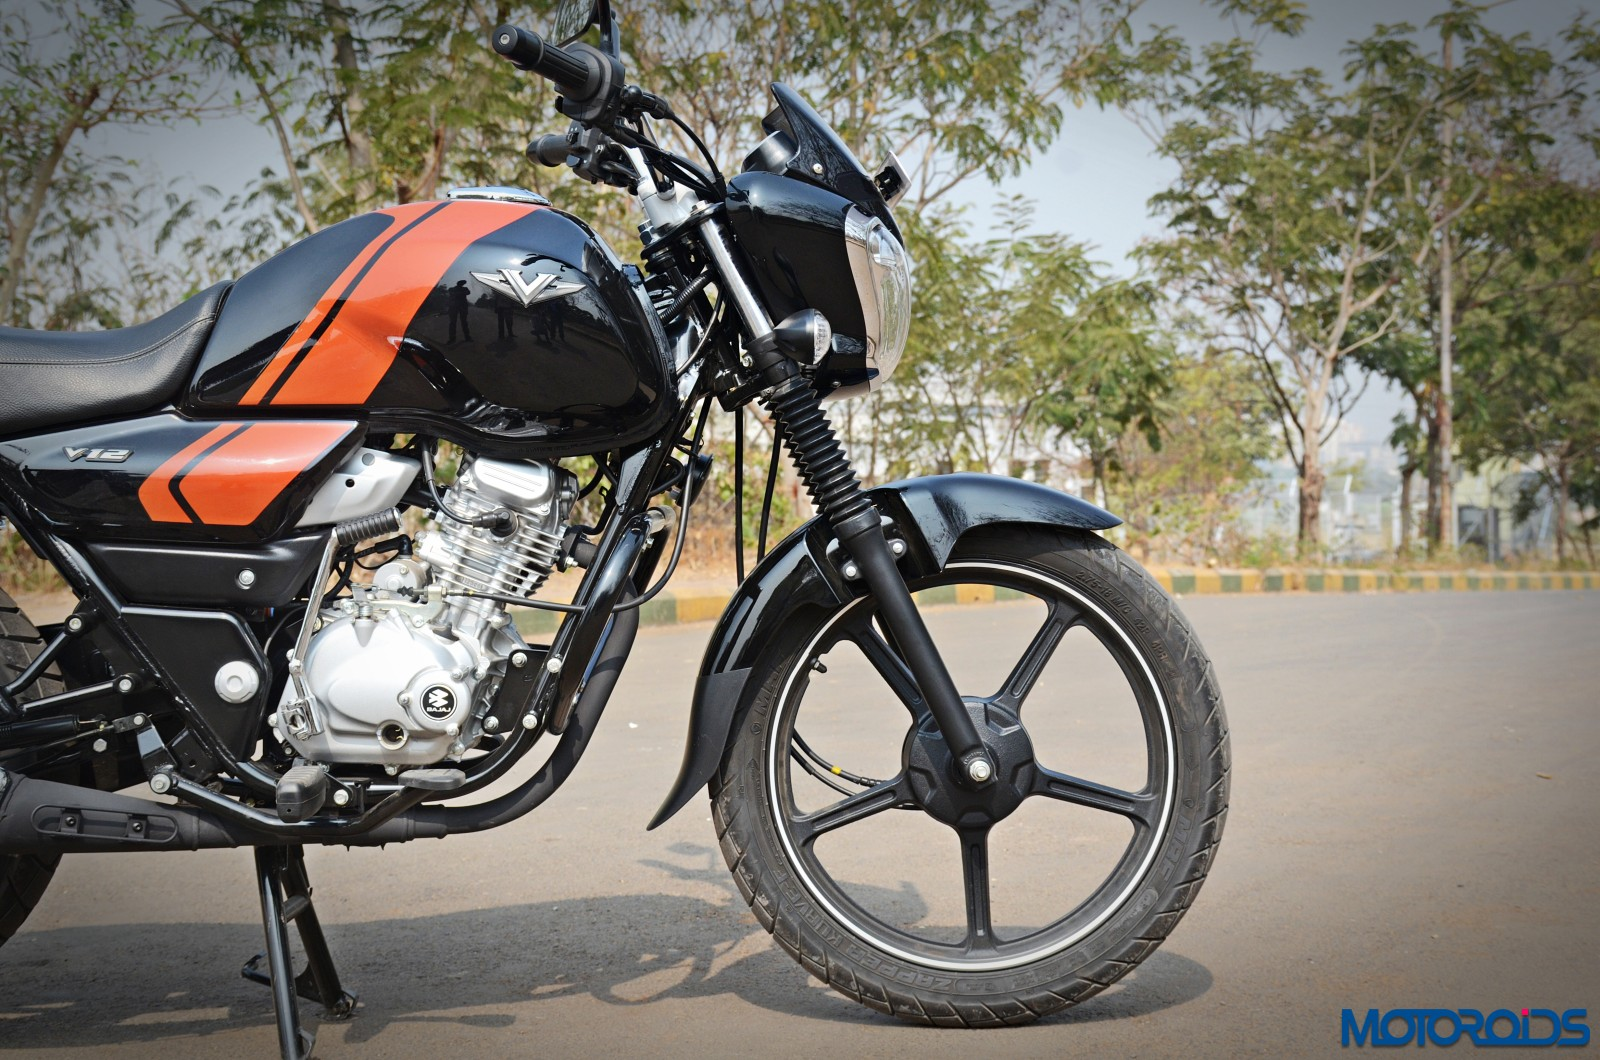 Bajaj-V12-Review-Details-61